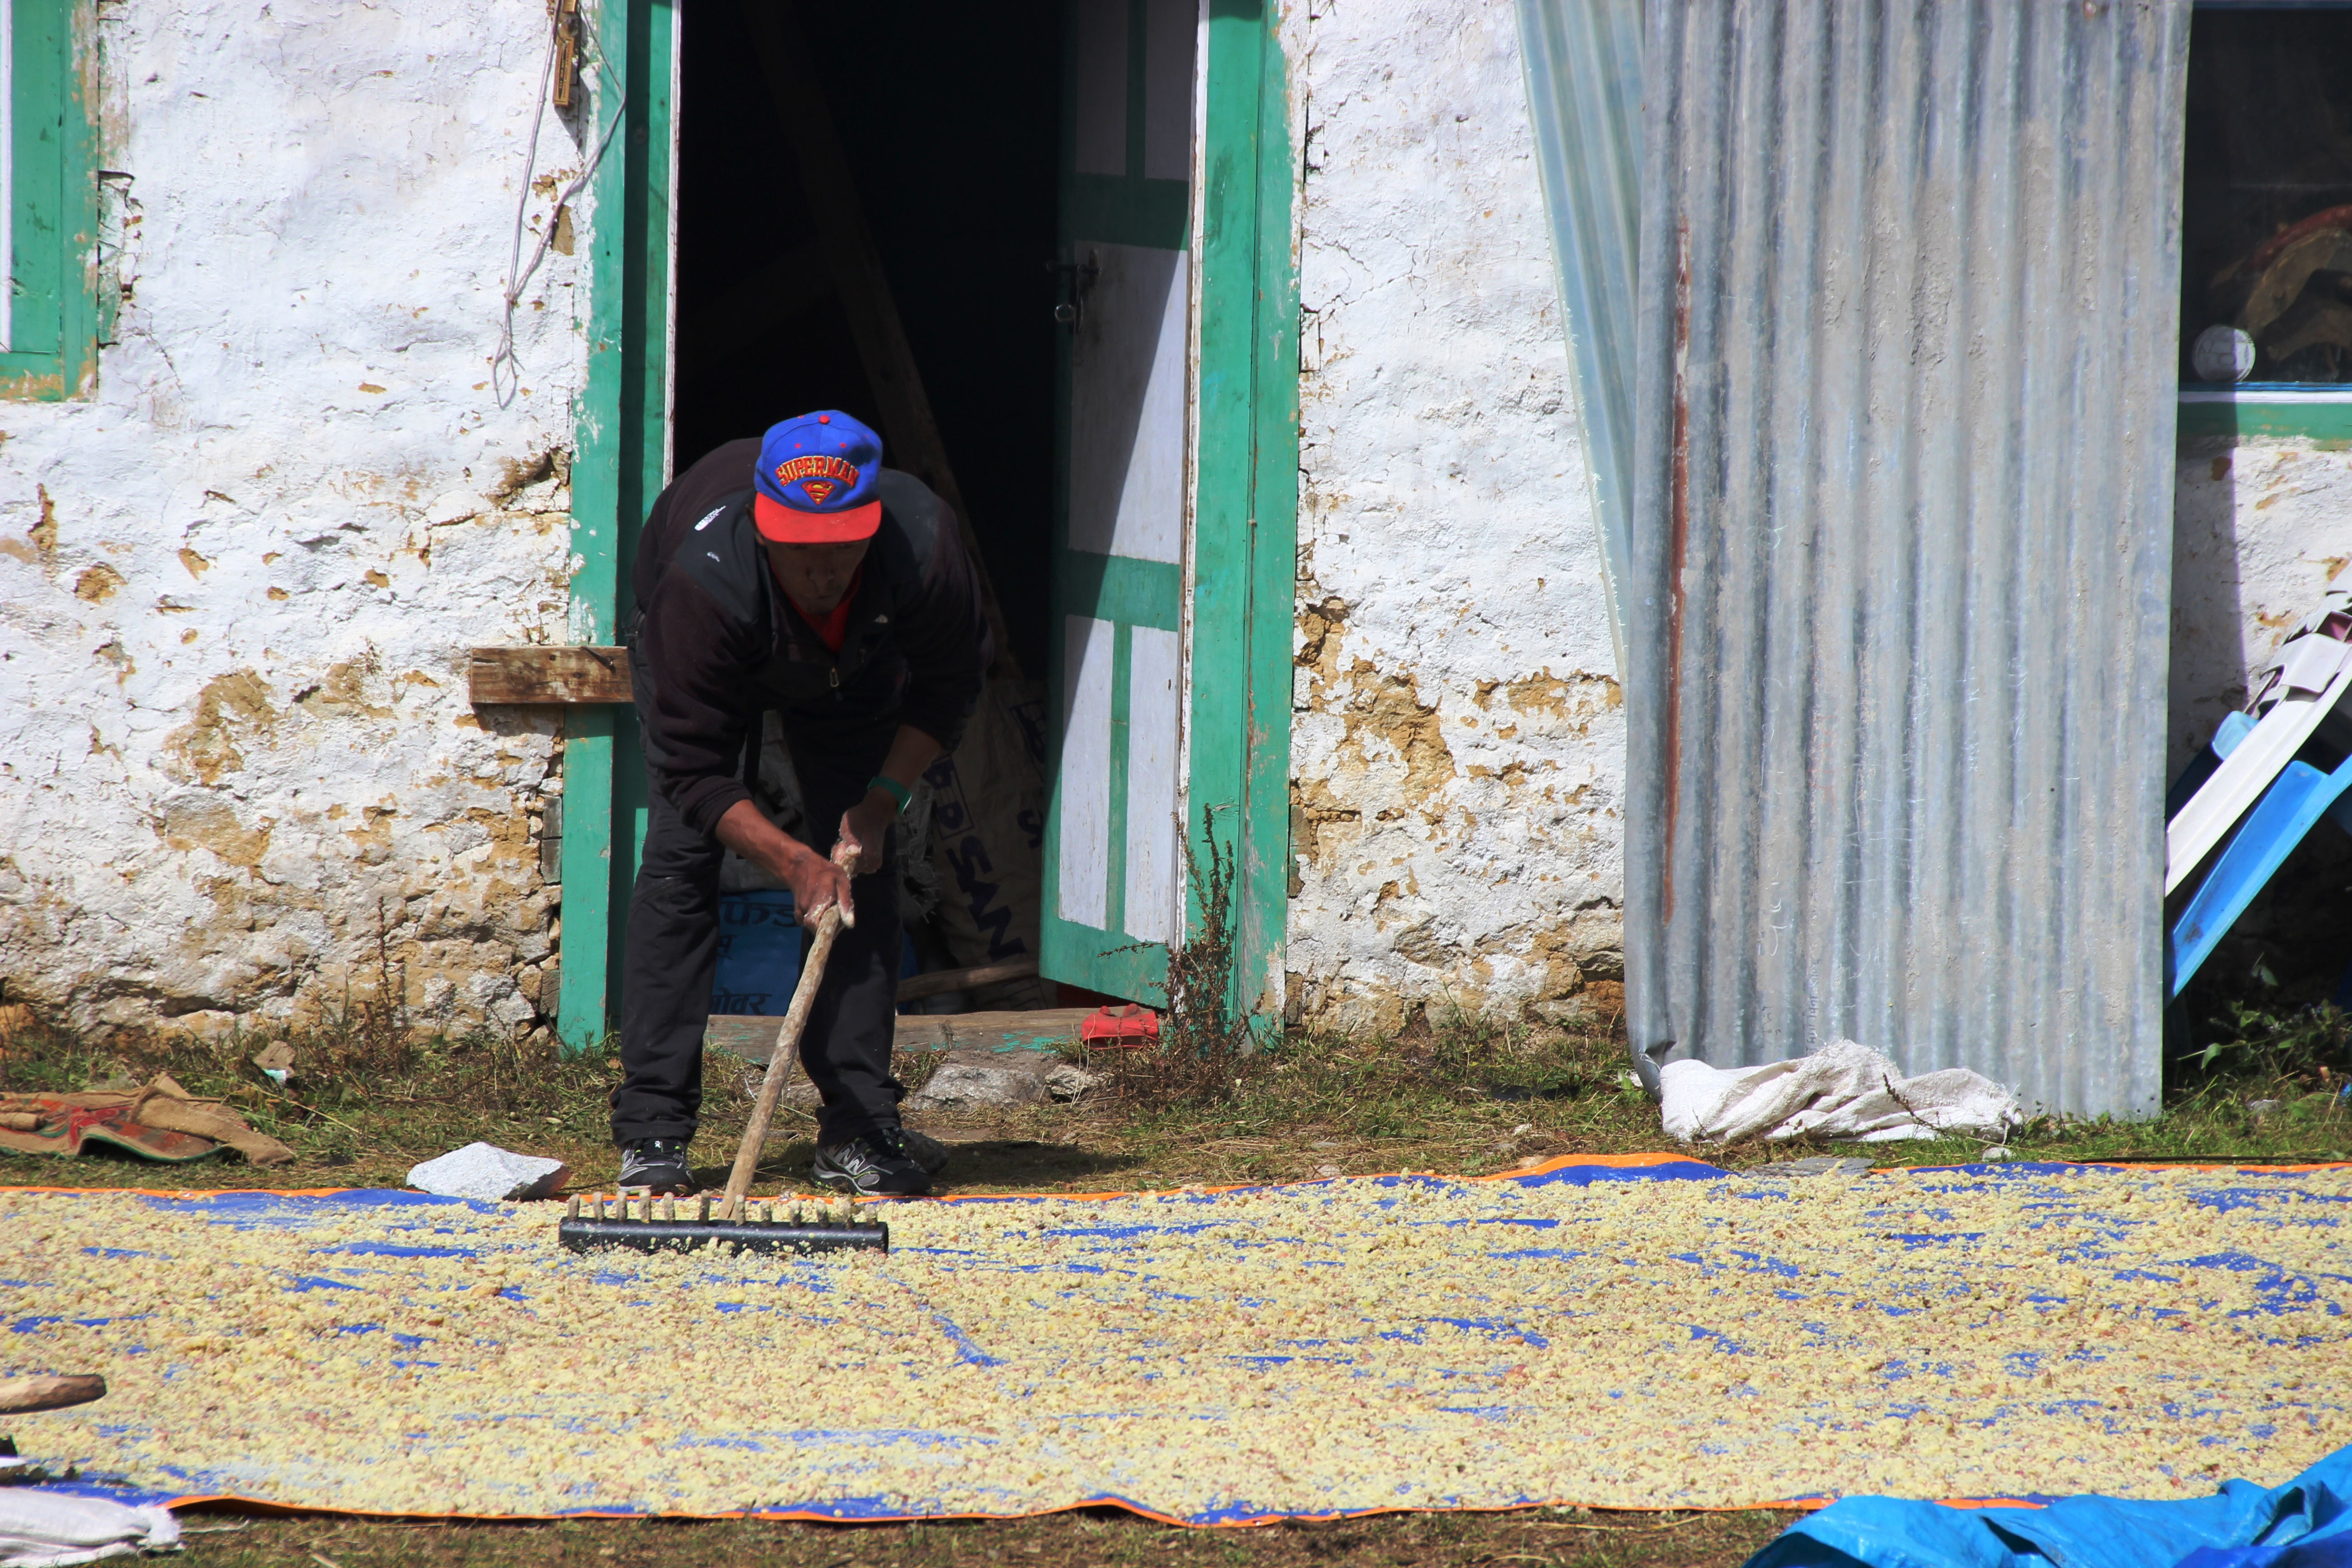 Villager Drying Potatoes